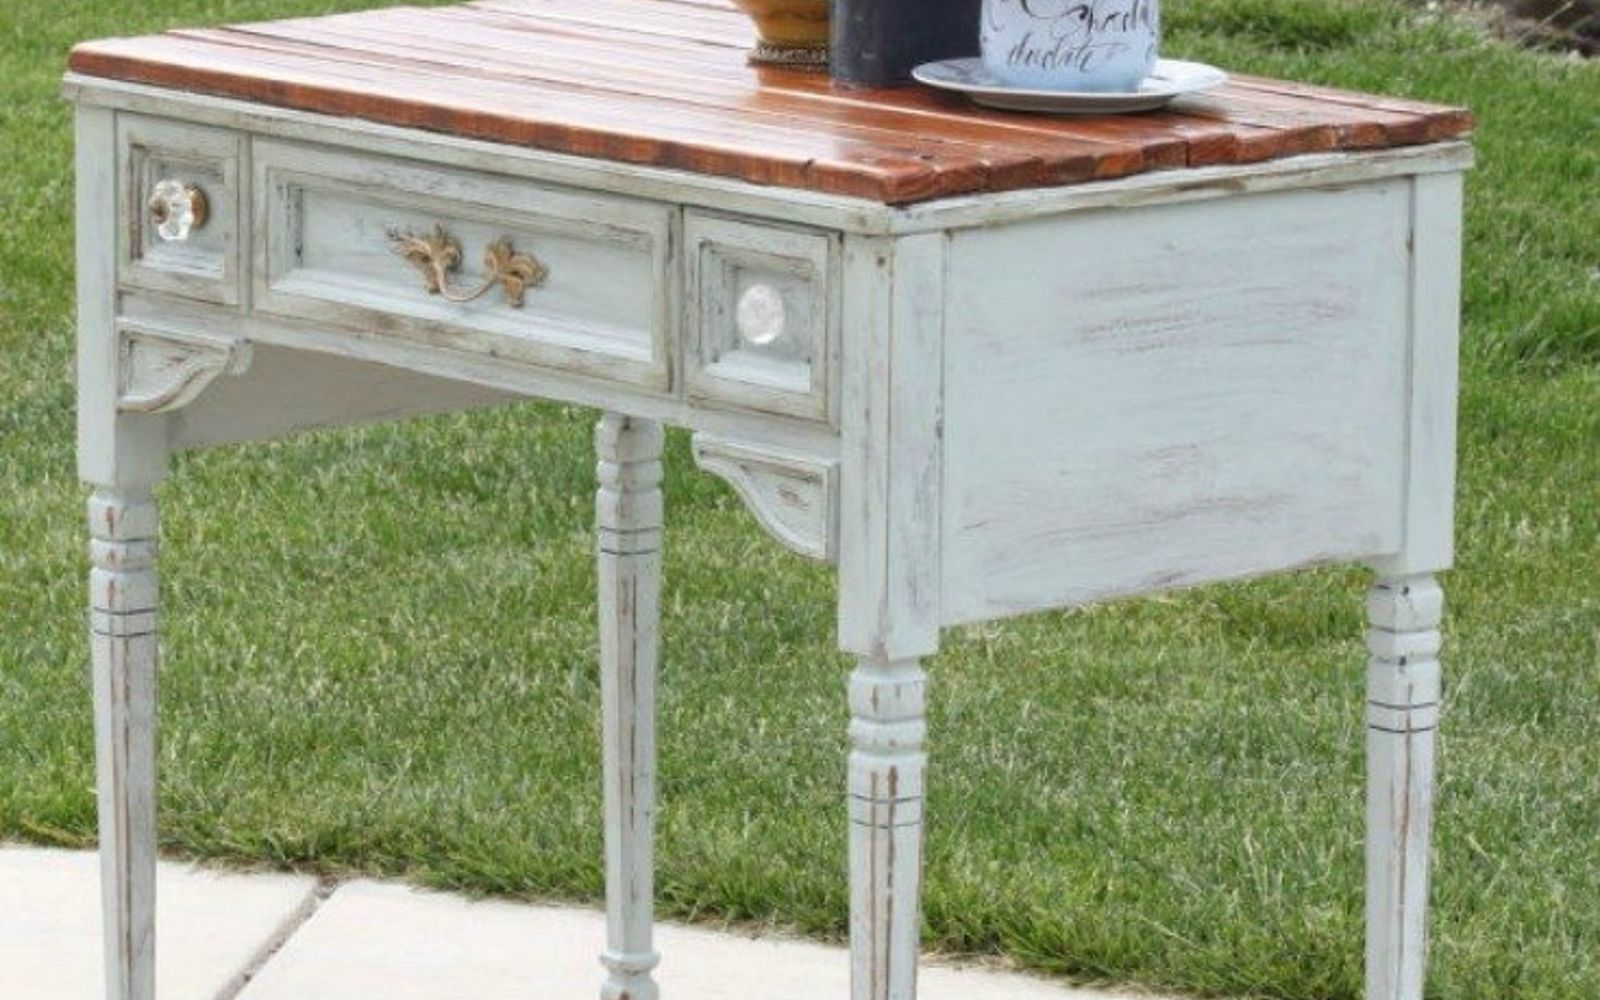 s 12 wildly creative ways to use your old sewing table, painted furniture, Give it a rustic top